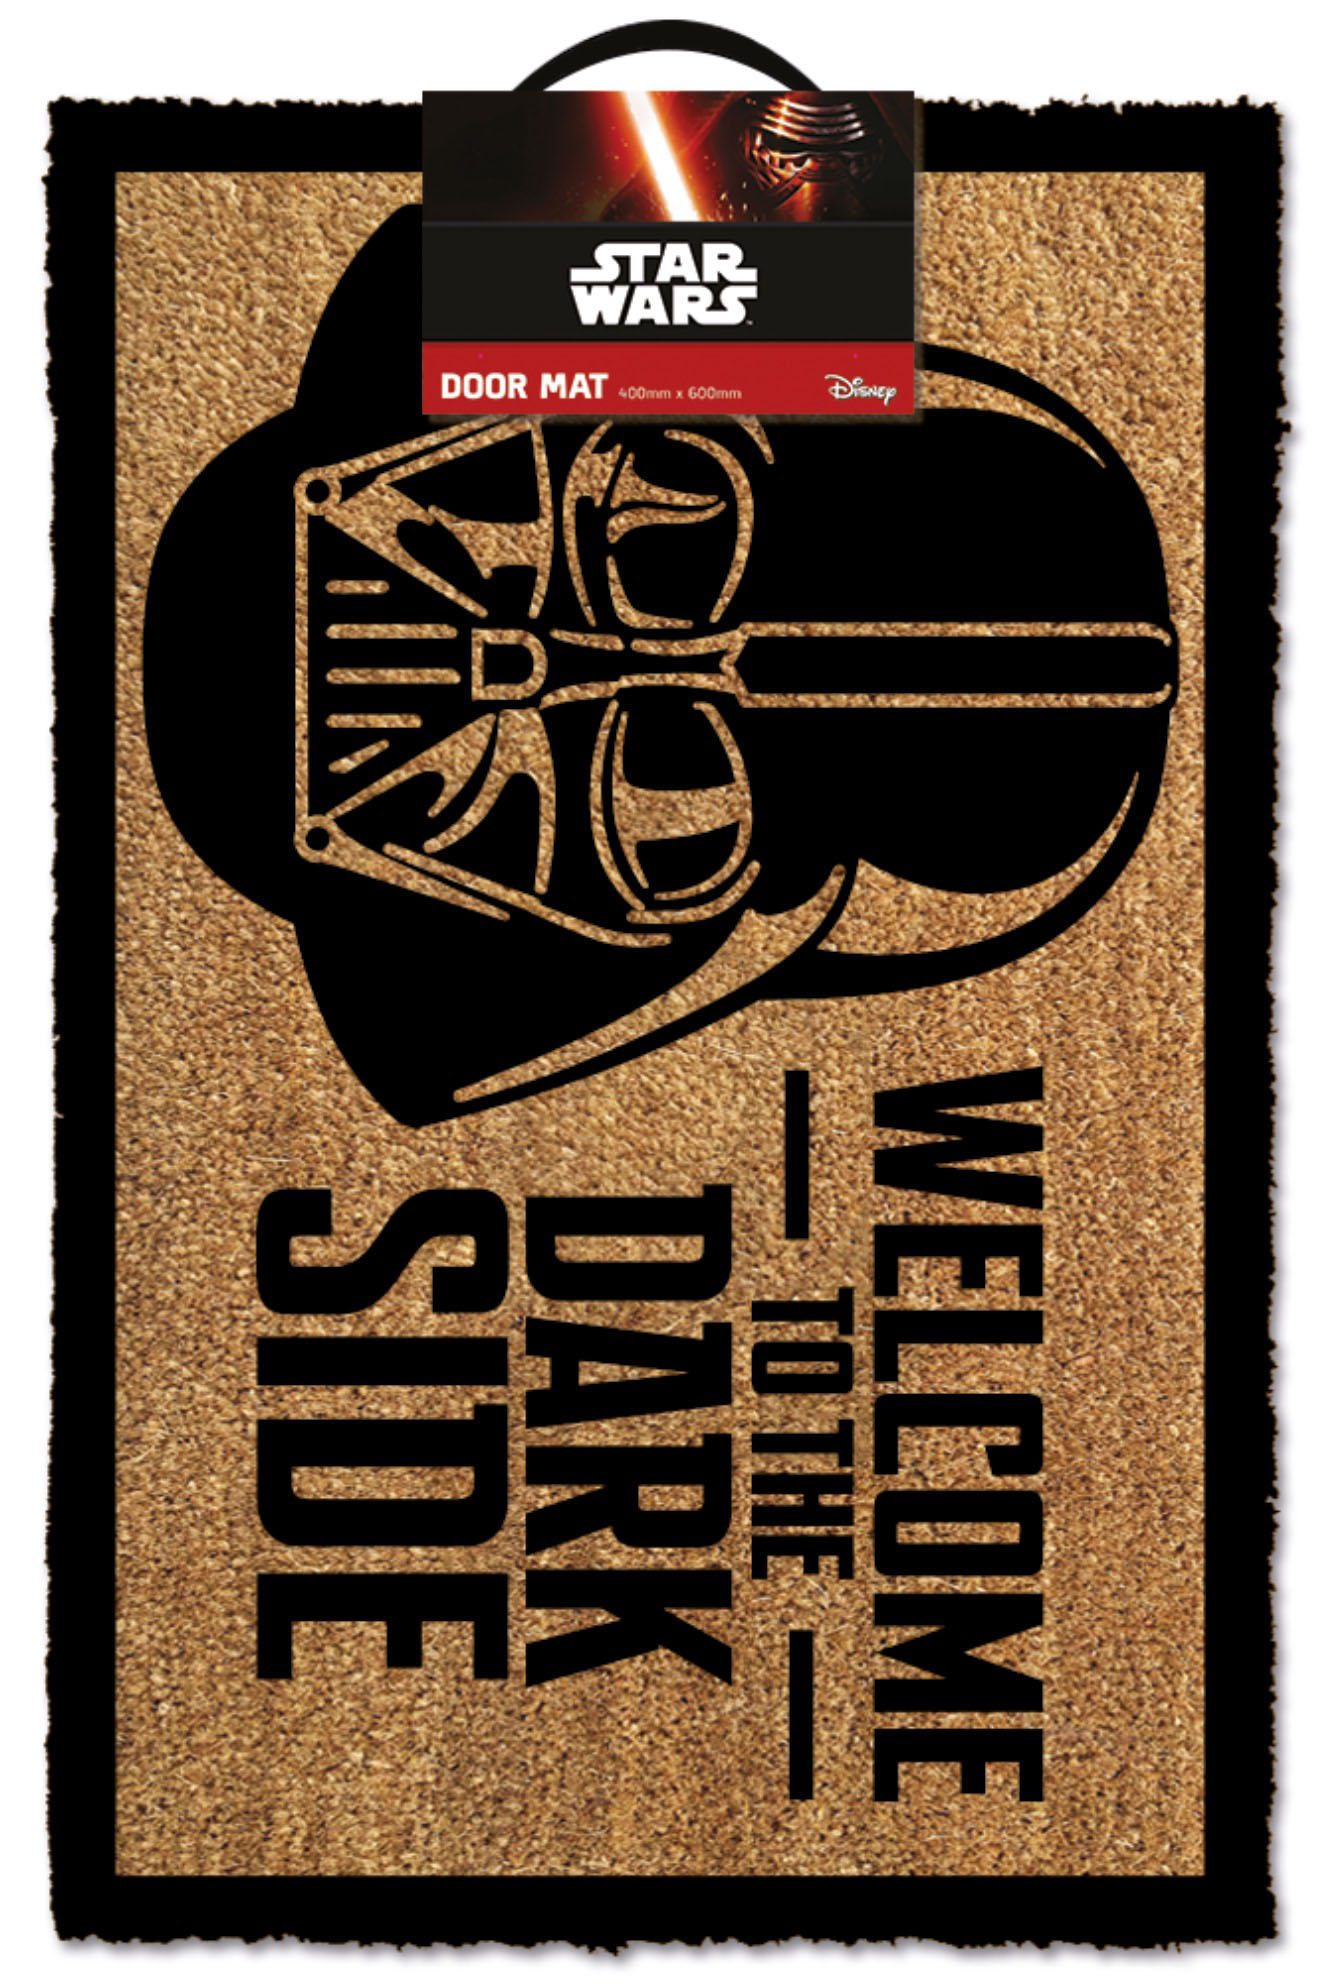 Rohožka - Star Wars Doormat Welcome To The Dark Side 40 x 60 cm